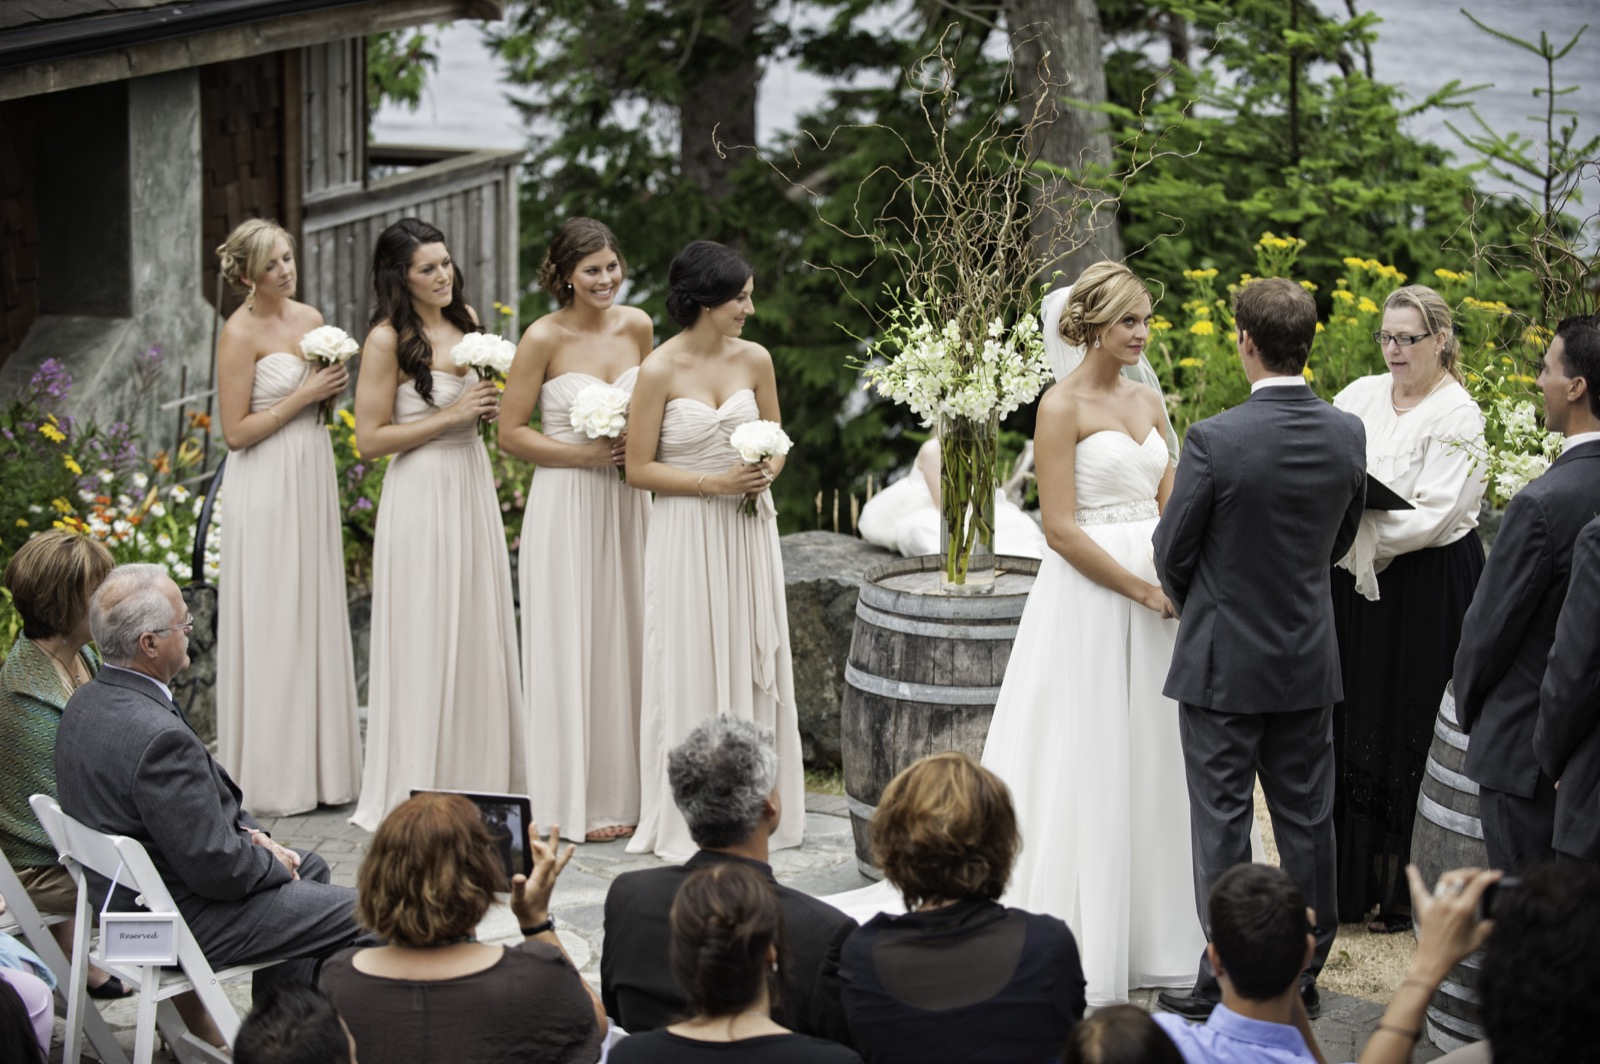 sooke-wedding-photographers-craidelonna-oceanedge-lodge-wedding-50.jpg